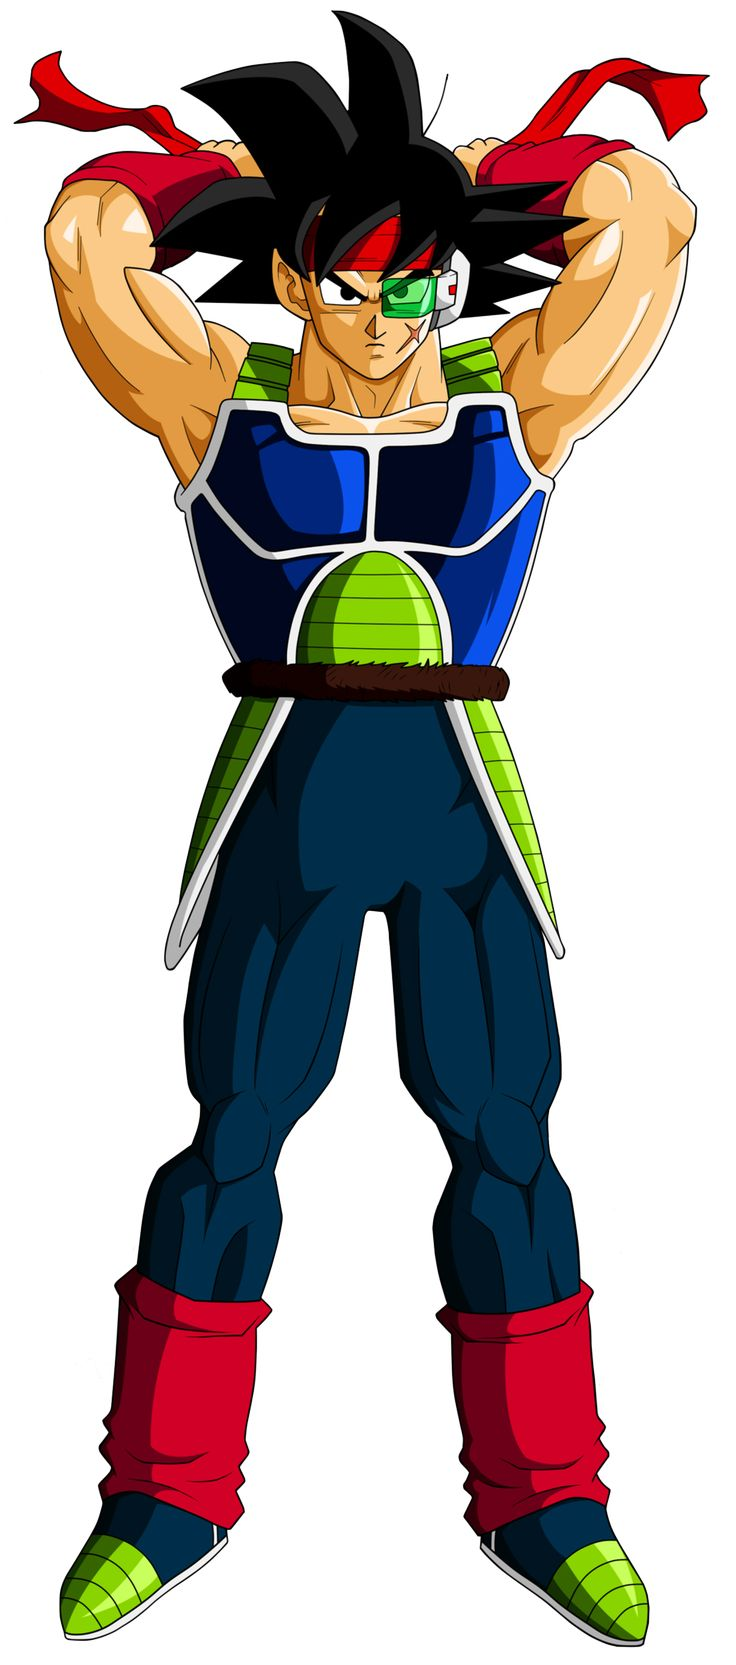 17 Best images about DRAGON BALL Z on Pinterest | Android ...